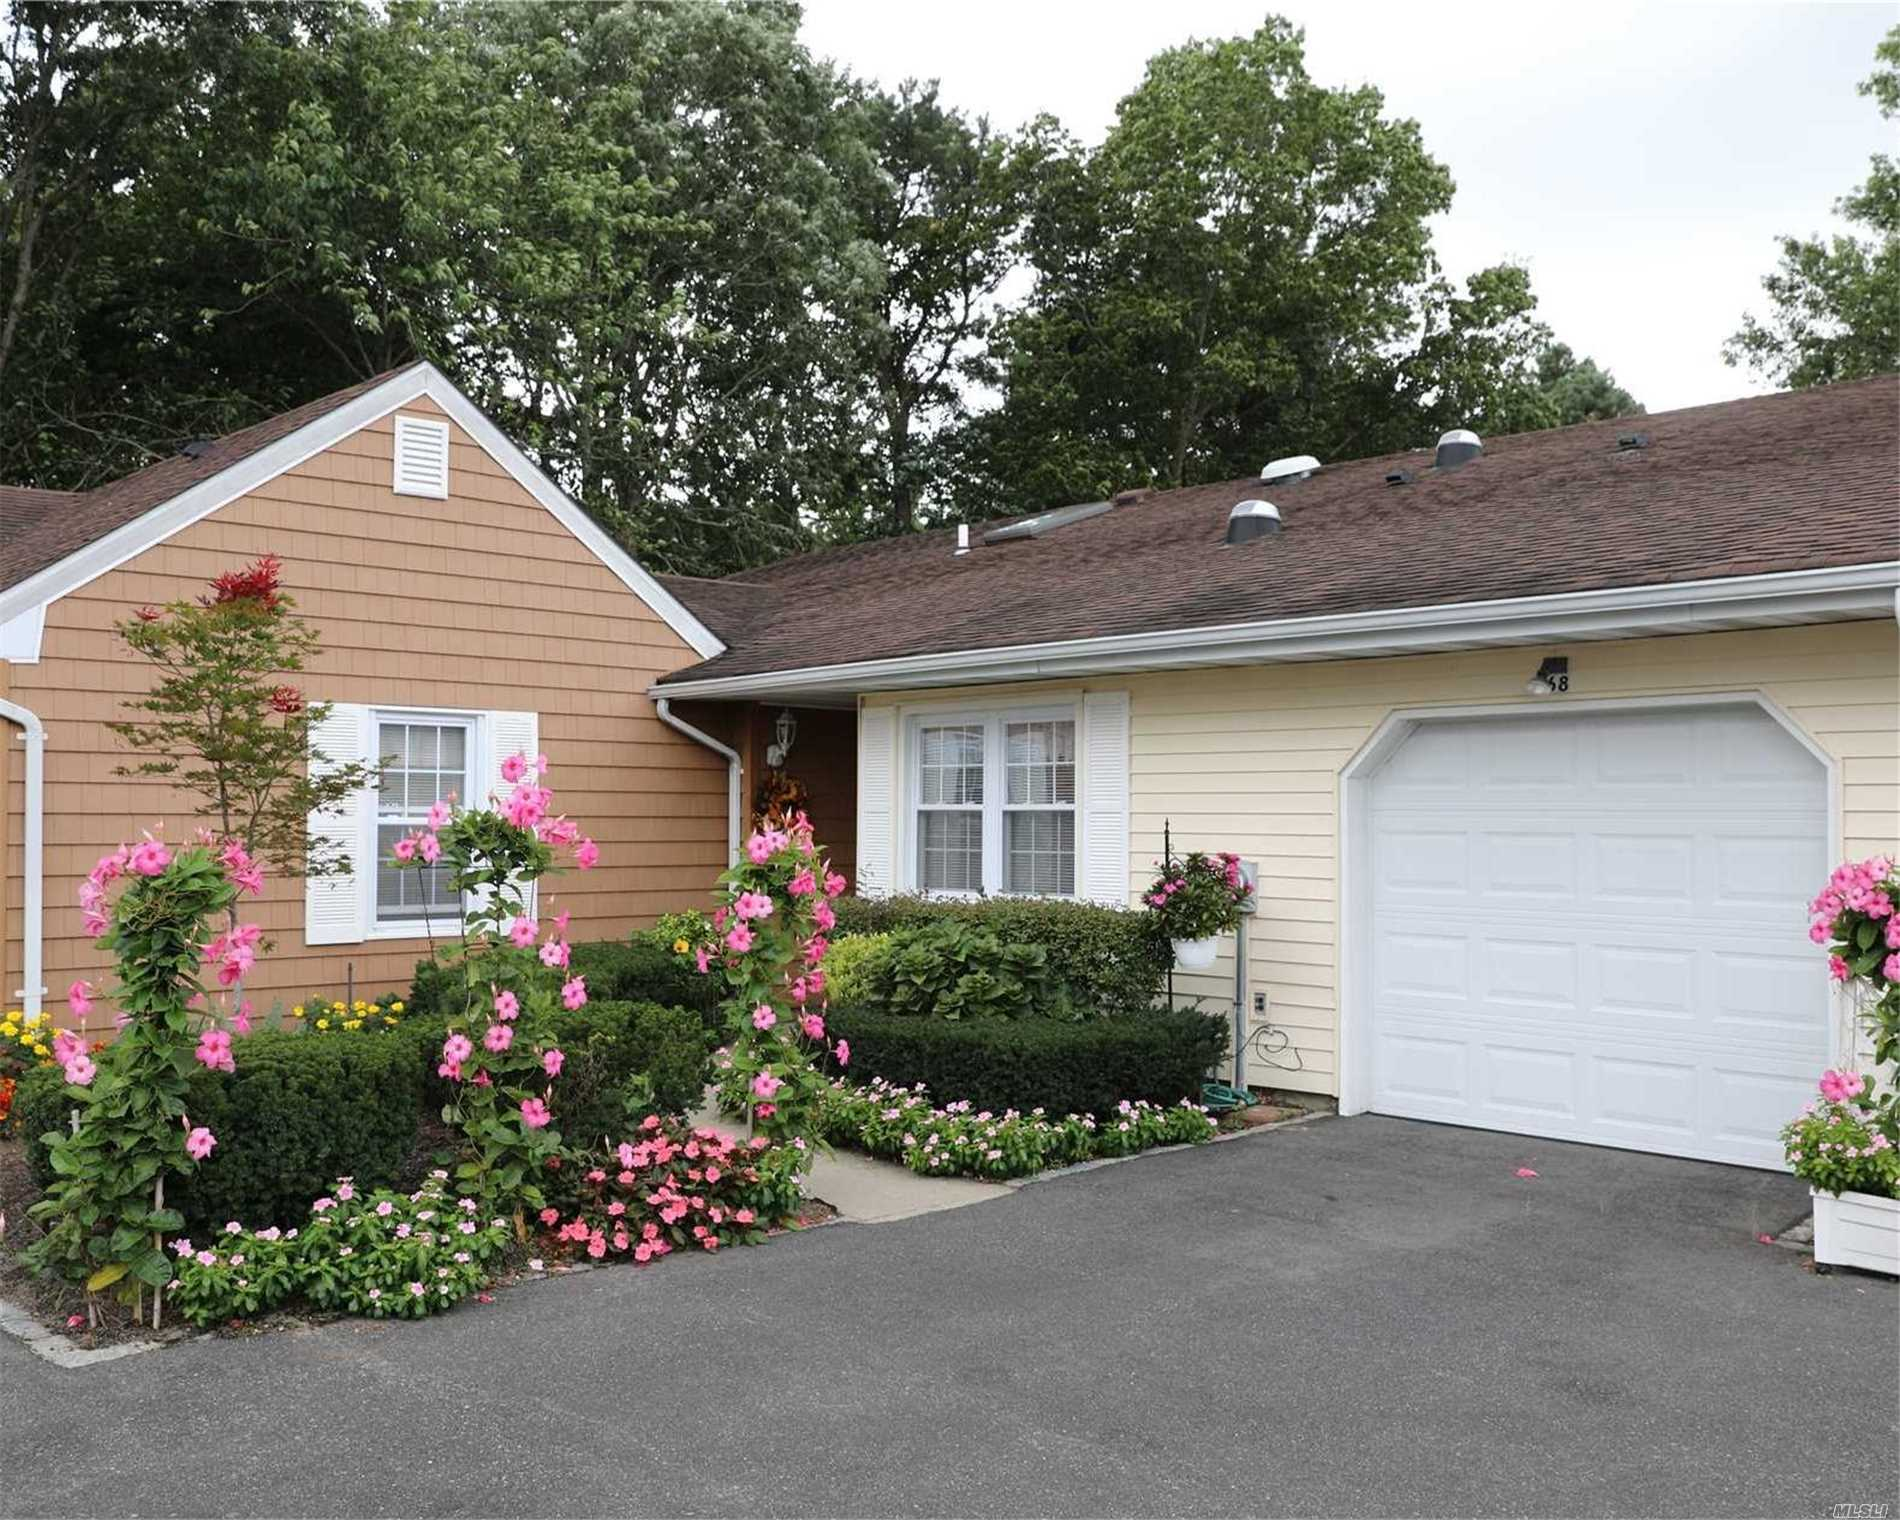 Location, Location. Immaculate, Turn Key Unit! Two Bedrooms, 2 Full Updated Bathrooms. Updated Kitchen With Year Old Appliances, All New Windows And Carpets Through Out. There Is A Lovely Private Patio With Garden. This Home Has Been Updated, Well Maintained And Loved By The Owner.